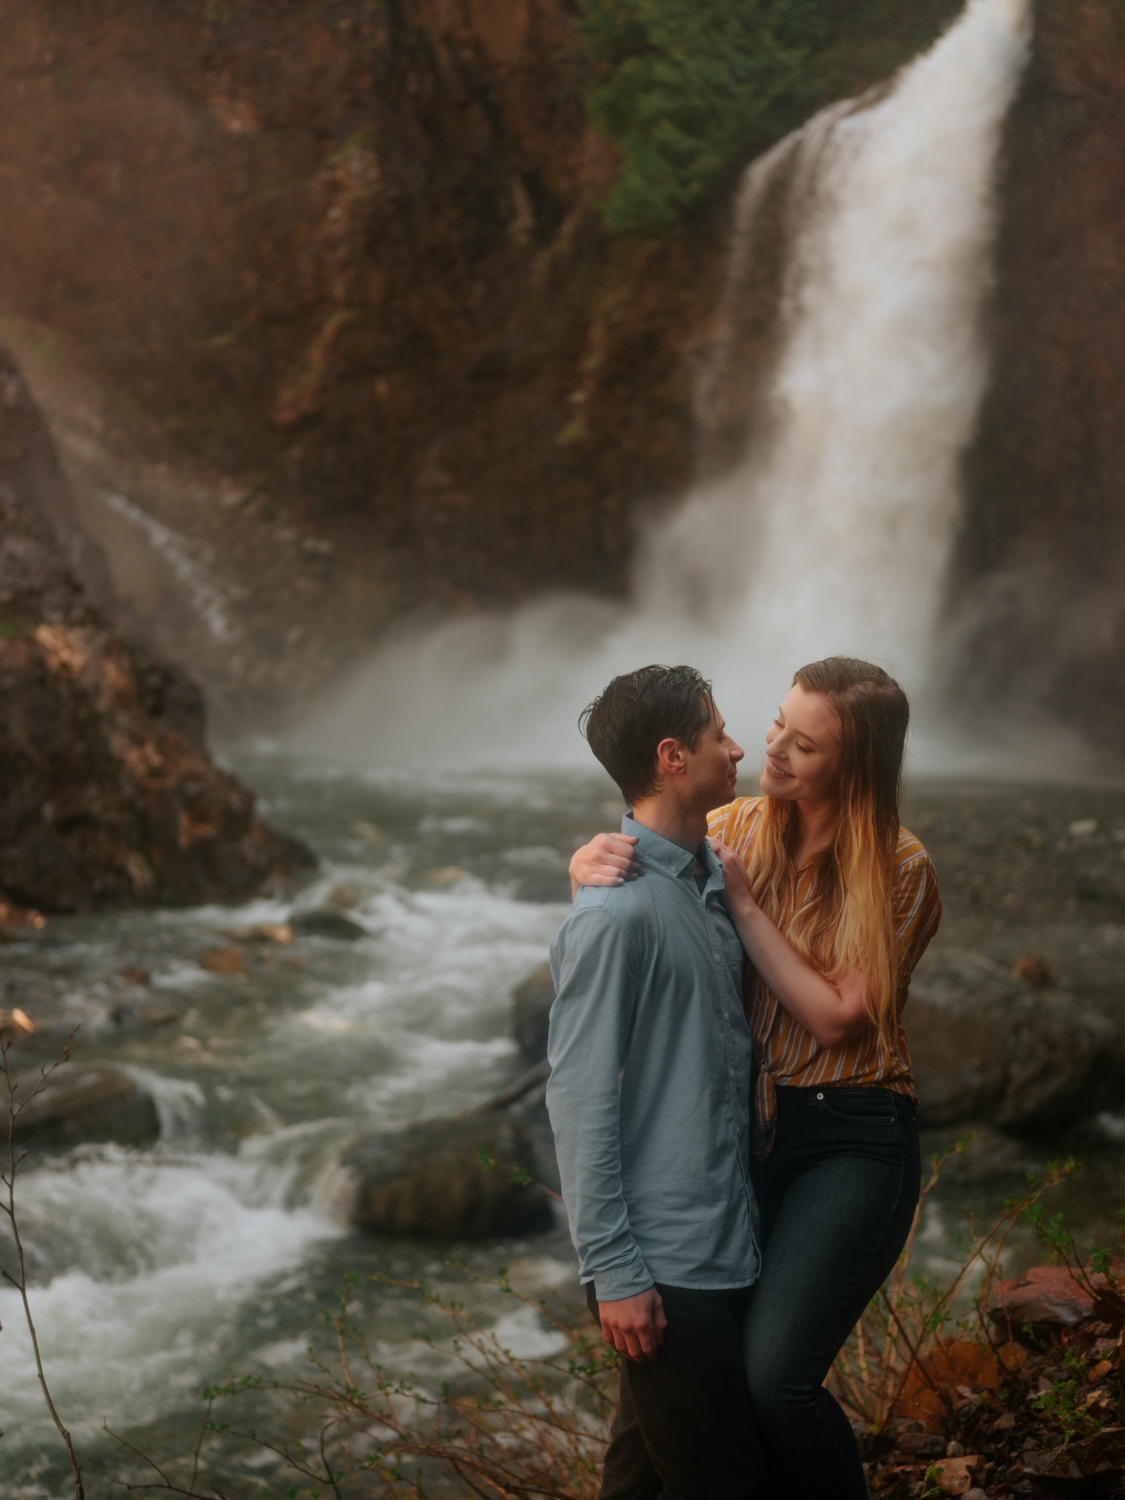 Franklin Falls Washington Engagement Session Stolen Glimpses Seattle Wedding Photographer 37.jpg